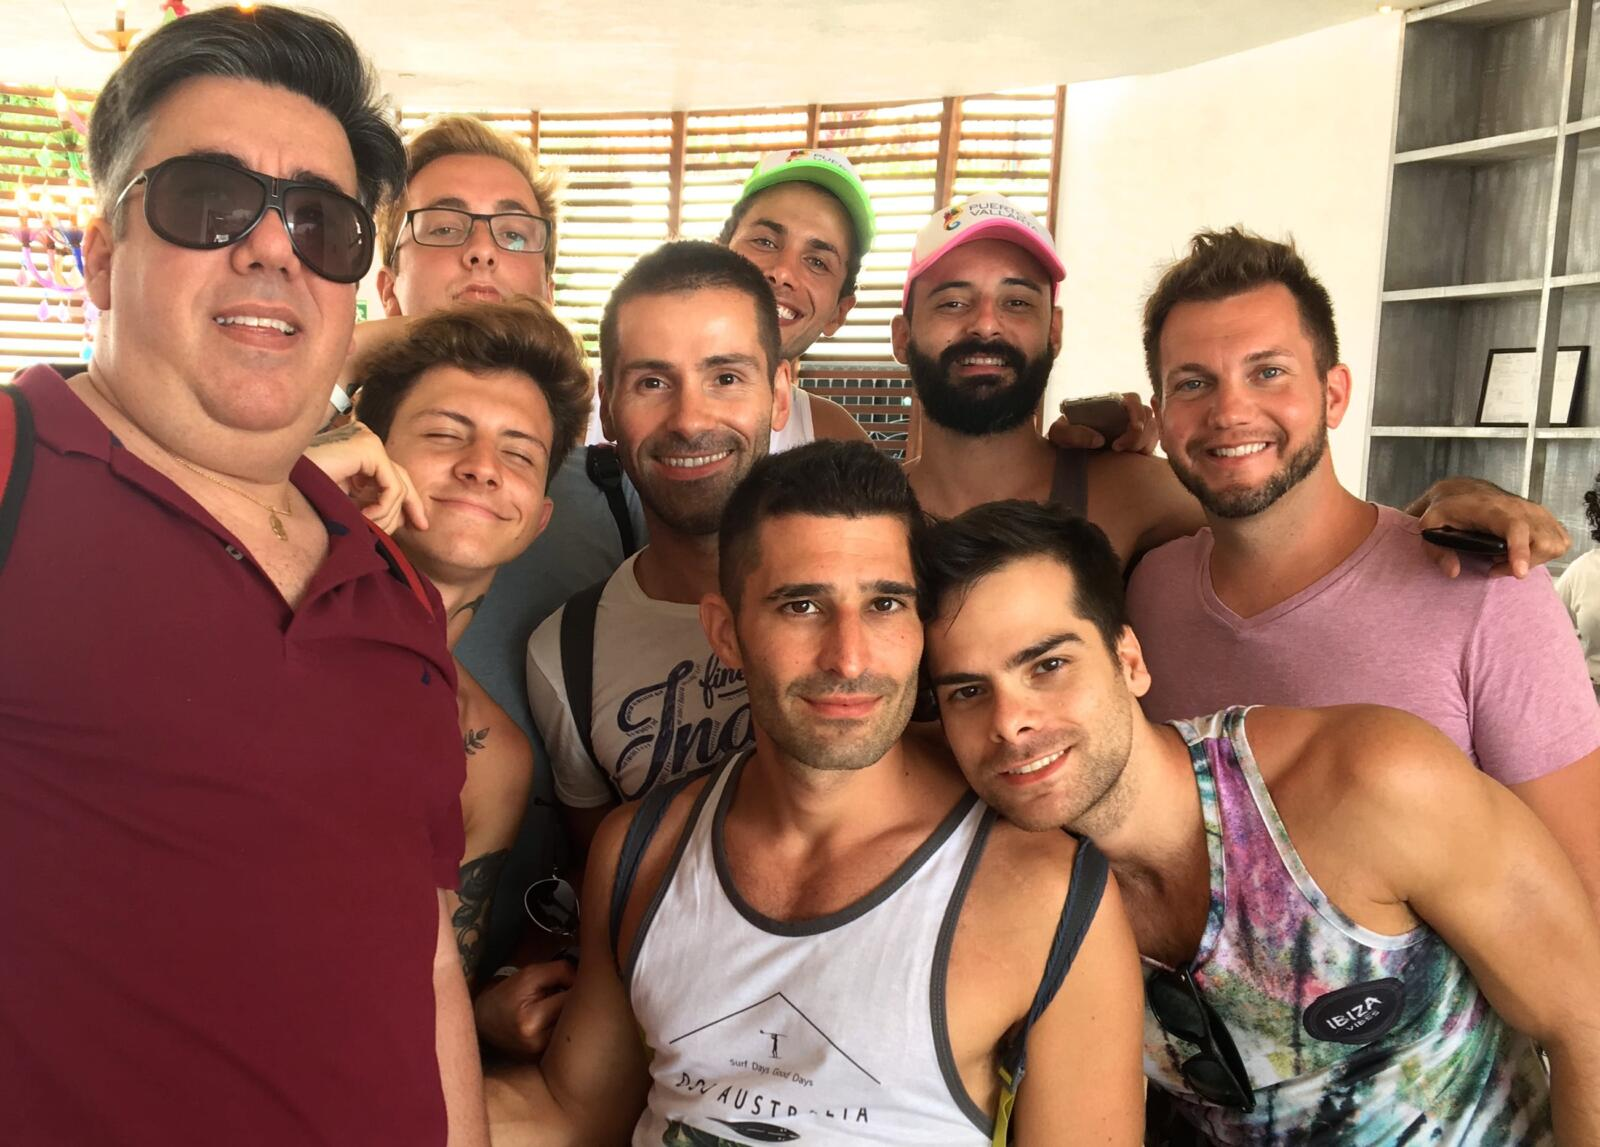 Puerto Vallarta gay pride with friends